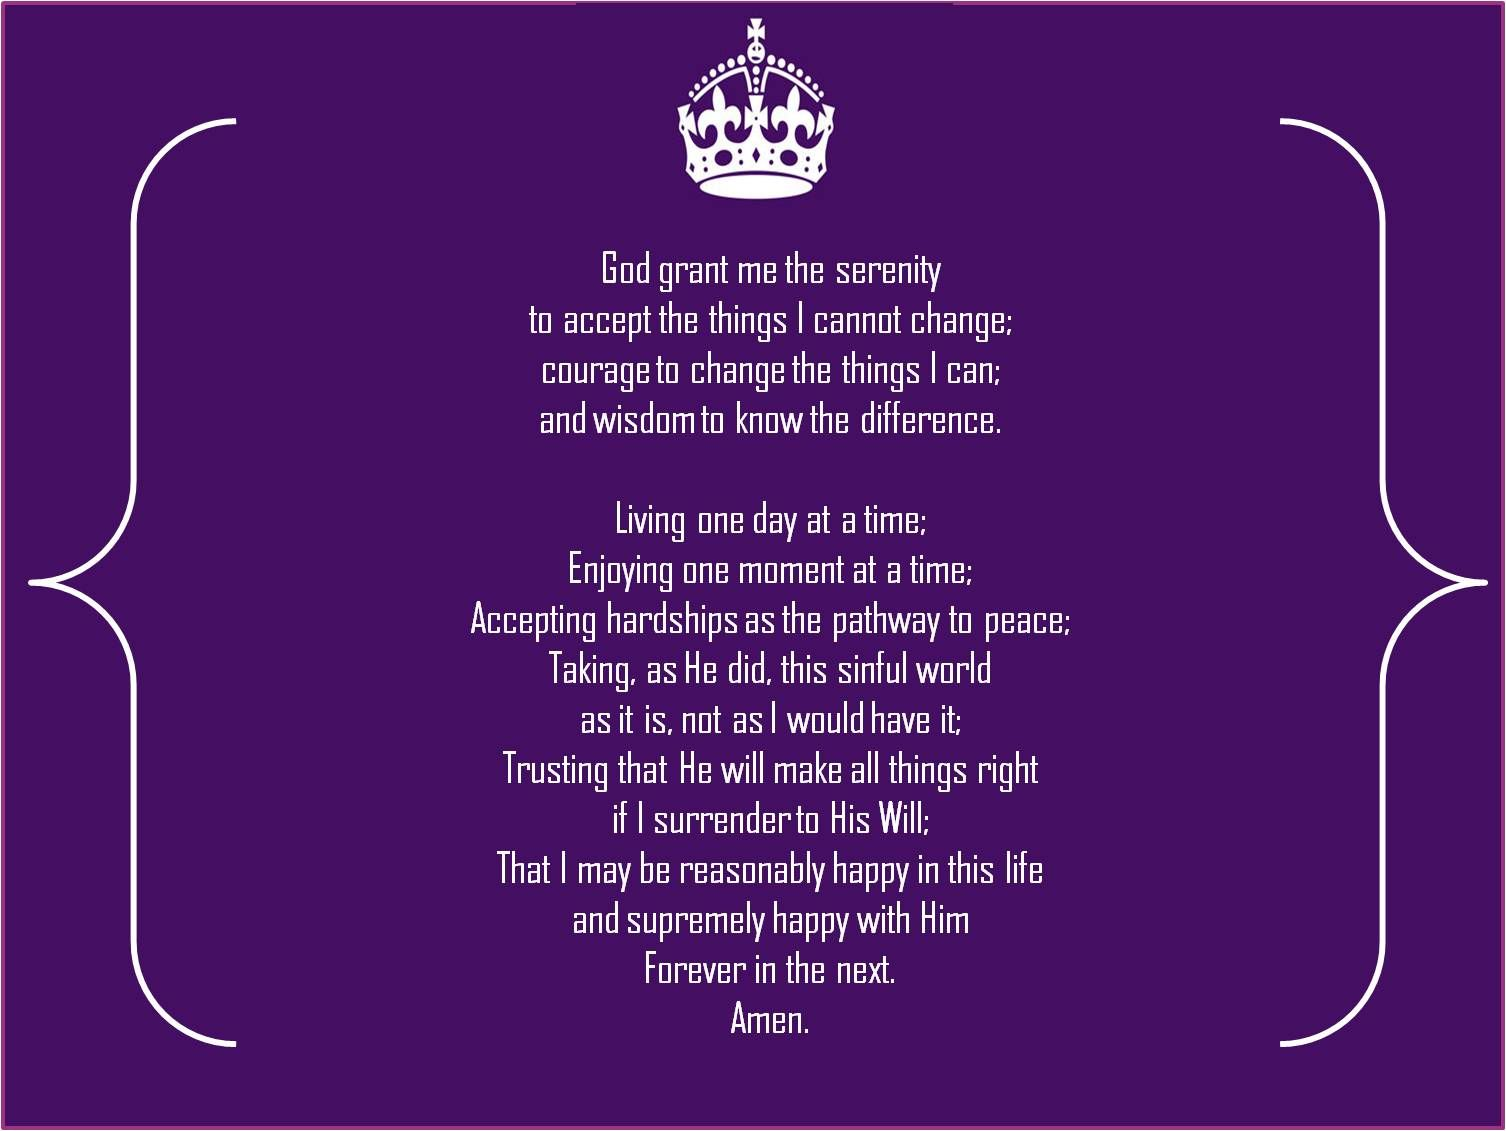 Serenity Prayer | Decor I Want/Need | Pinterest | Full serenity prayer